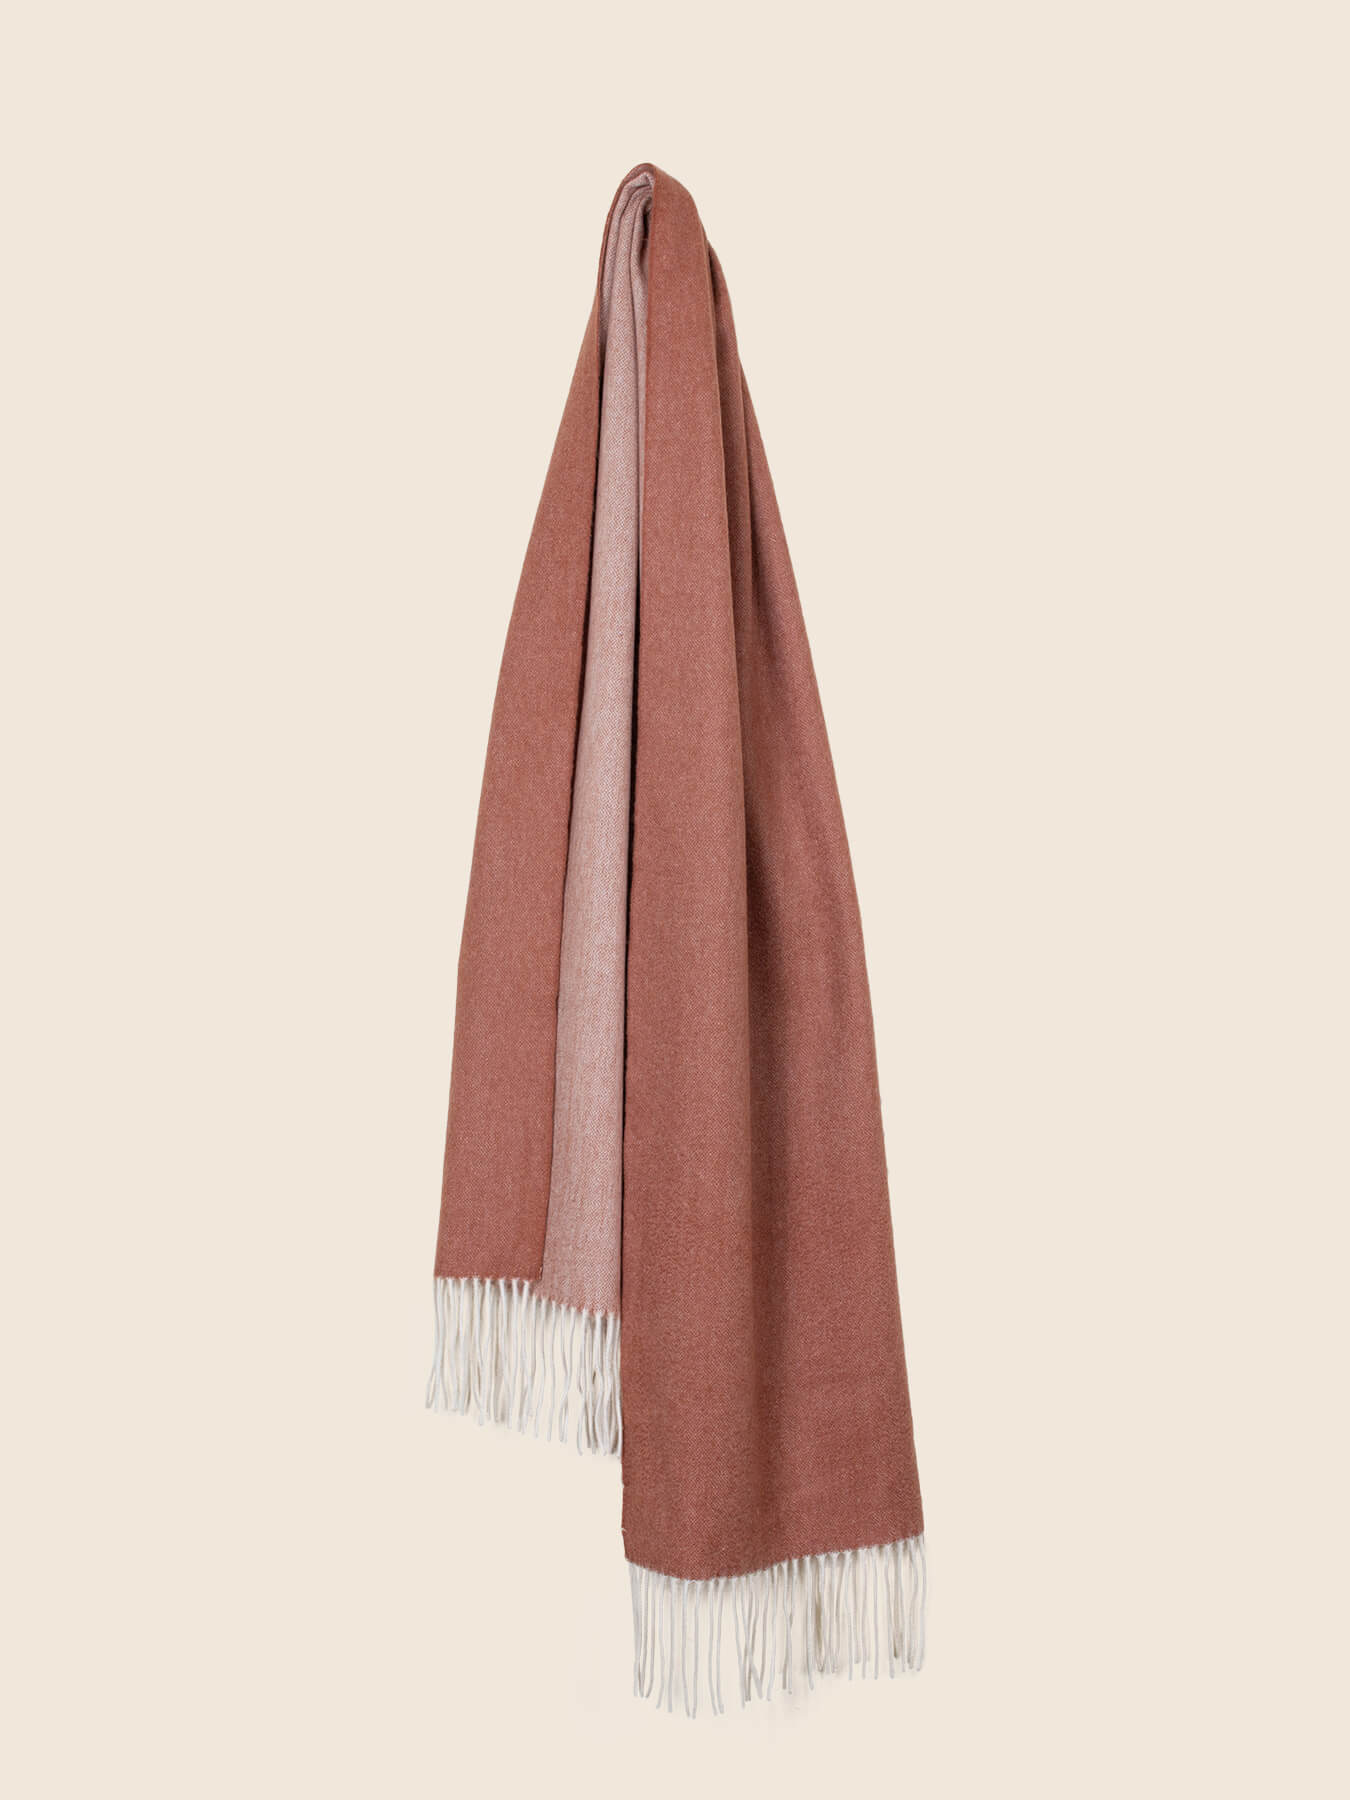 Two-Tone Reversible Cashmere Shawl Burnt Orange 2